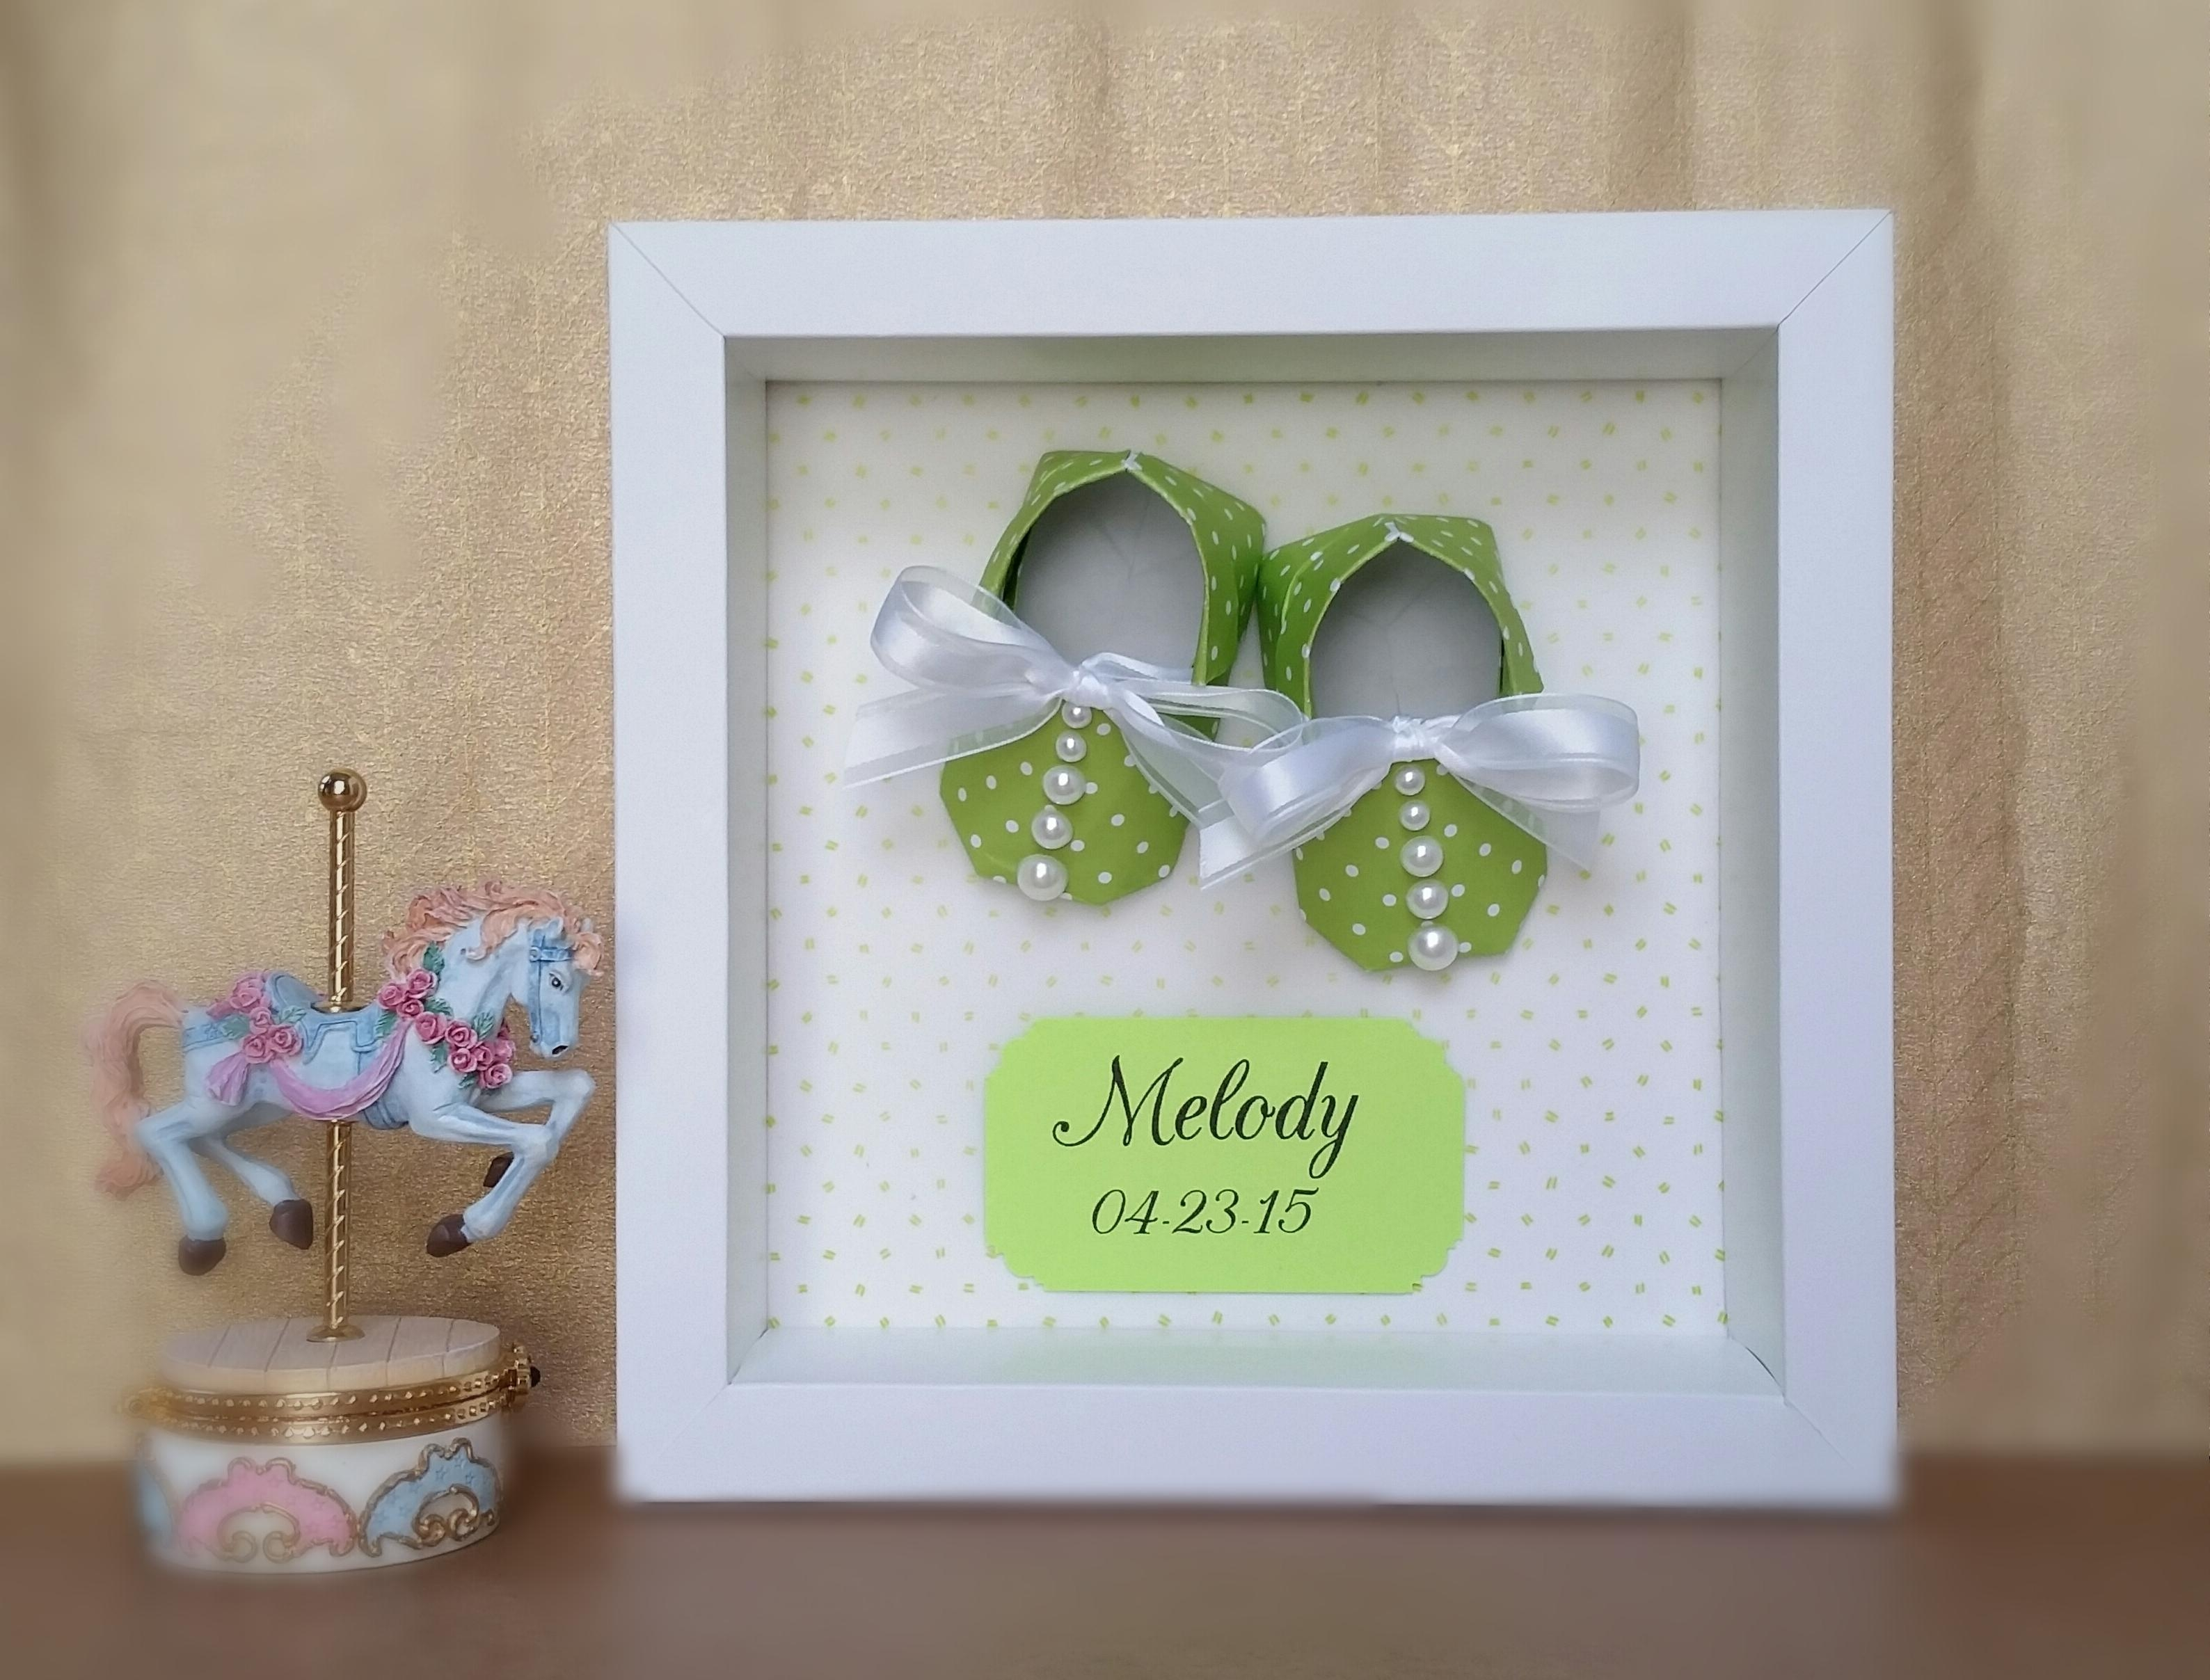 Nursery Decor, Origami Baby Shoes Booties Framed 3D Wall Art Regarding Nursery Framed Wall Art (Image 13 of 20)